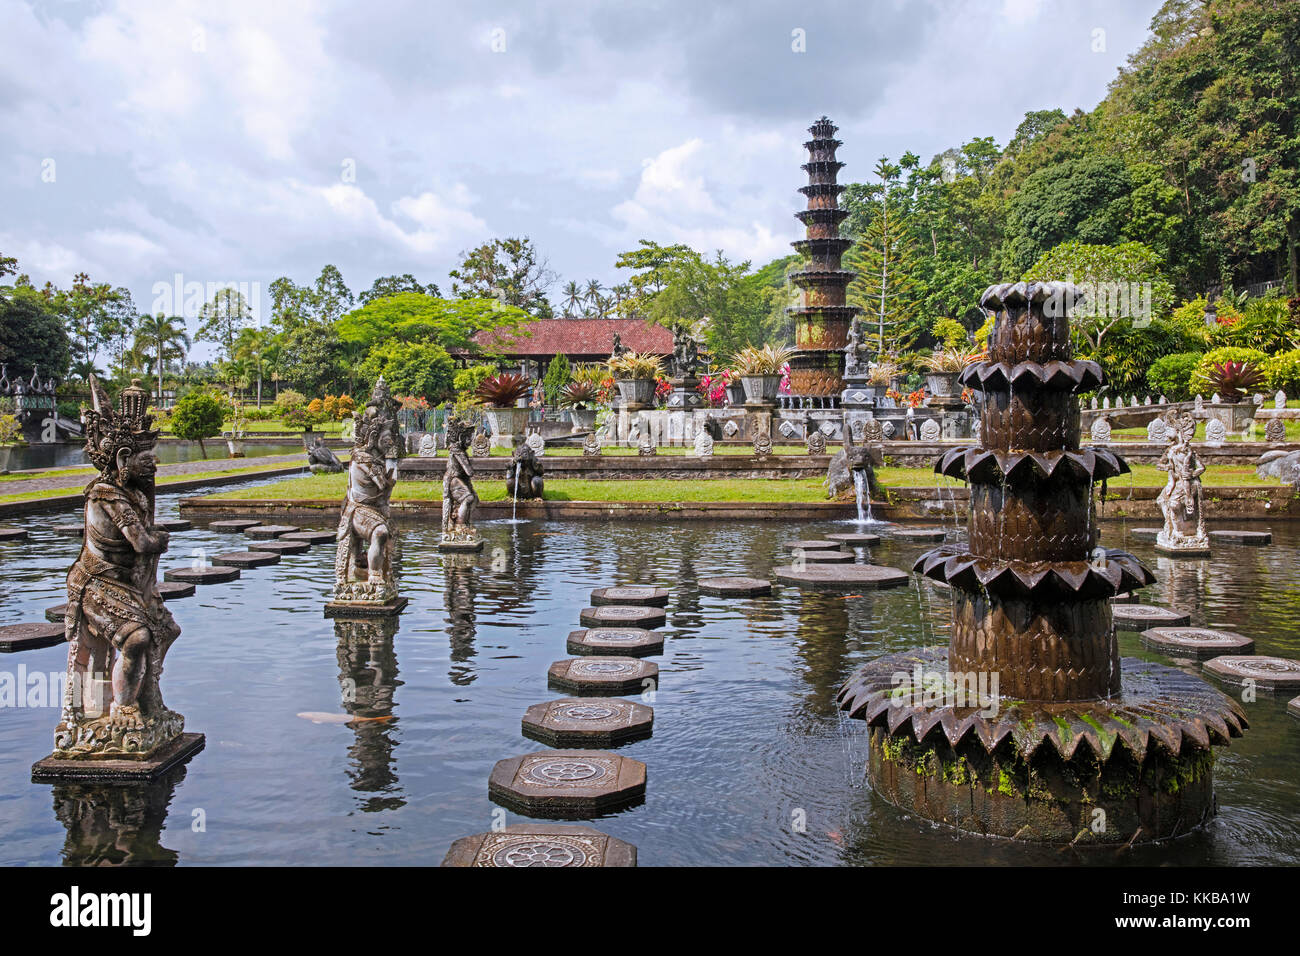 Tirta Gangga Royal Water Garden: Bali Garden Stock Photos & Bali Garden Stock Images